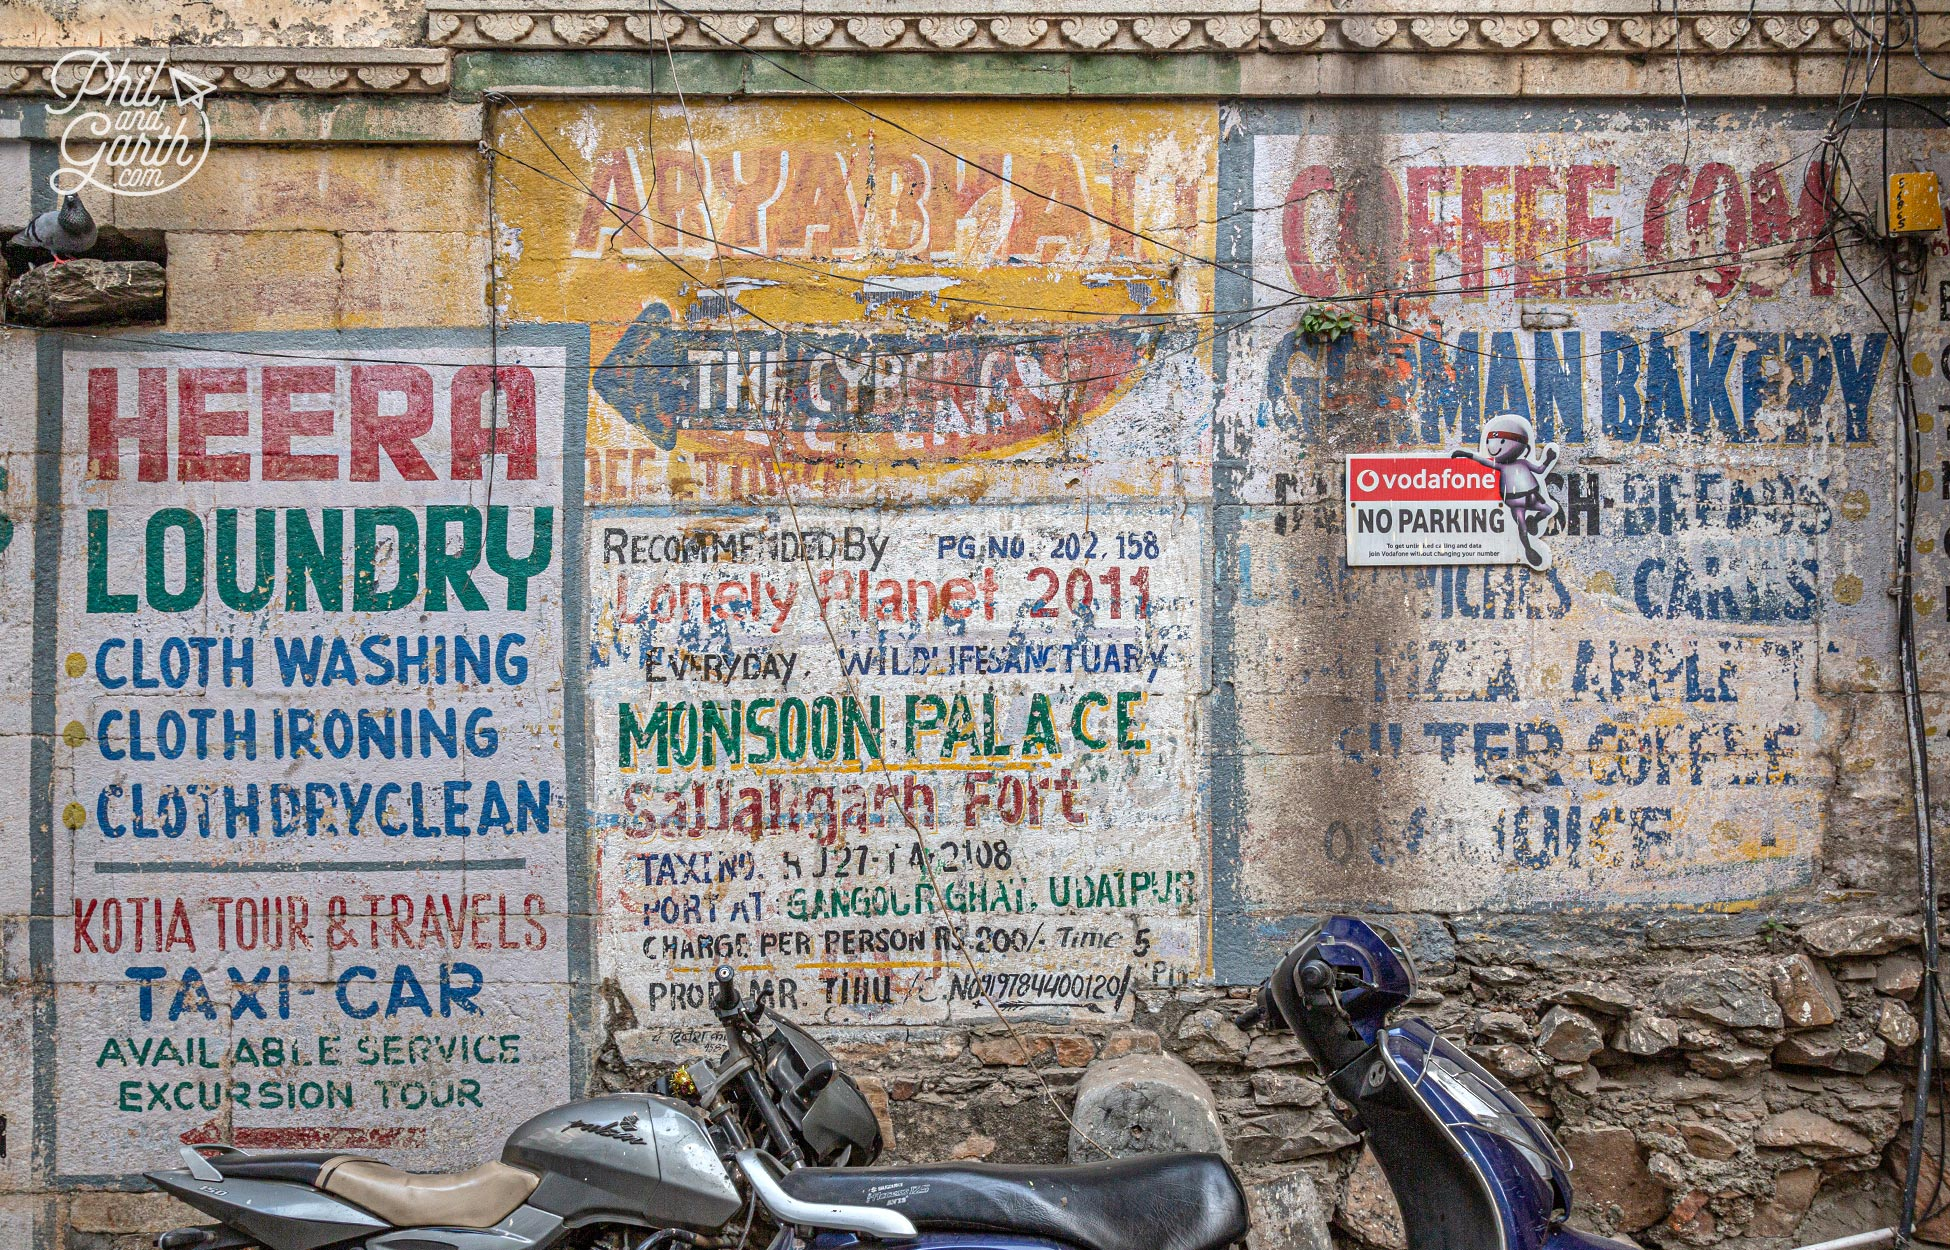 Love these old hand painted signs